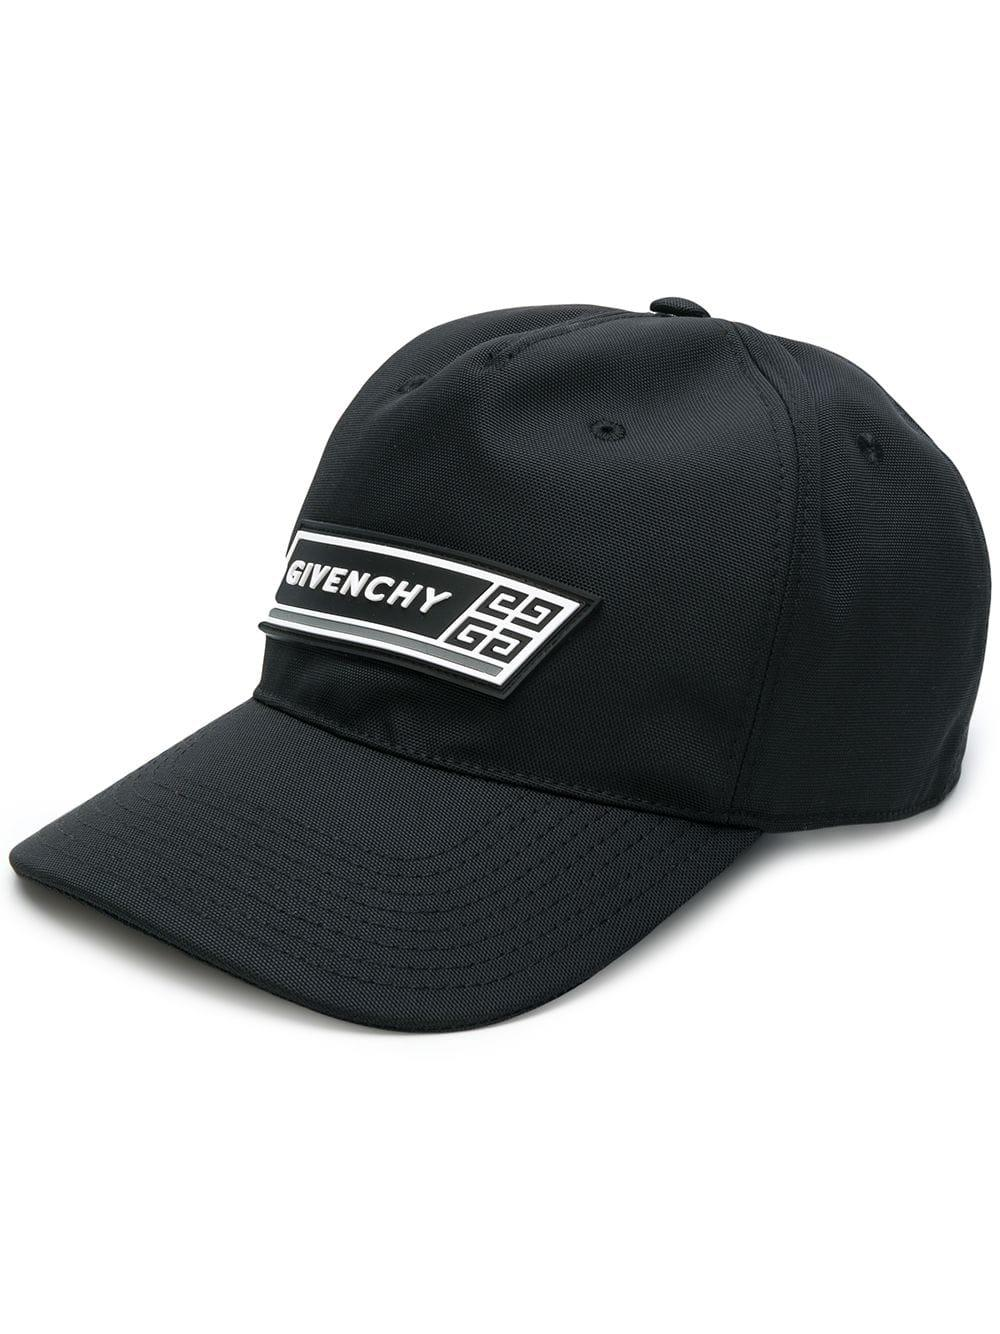 c39825808ab Givenchy - Black Curved Cap With Logo for Men - Lyst. View fullscreen